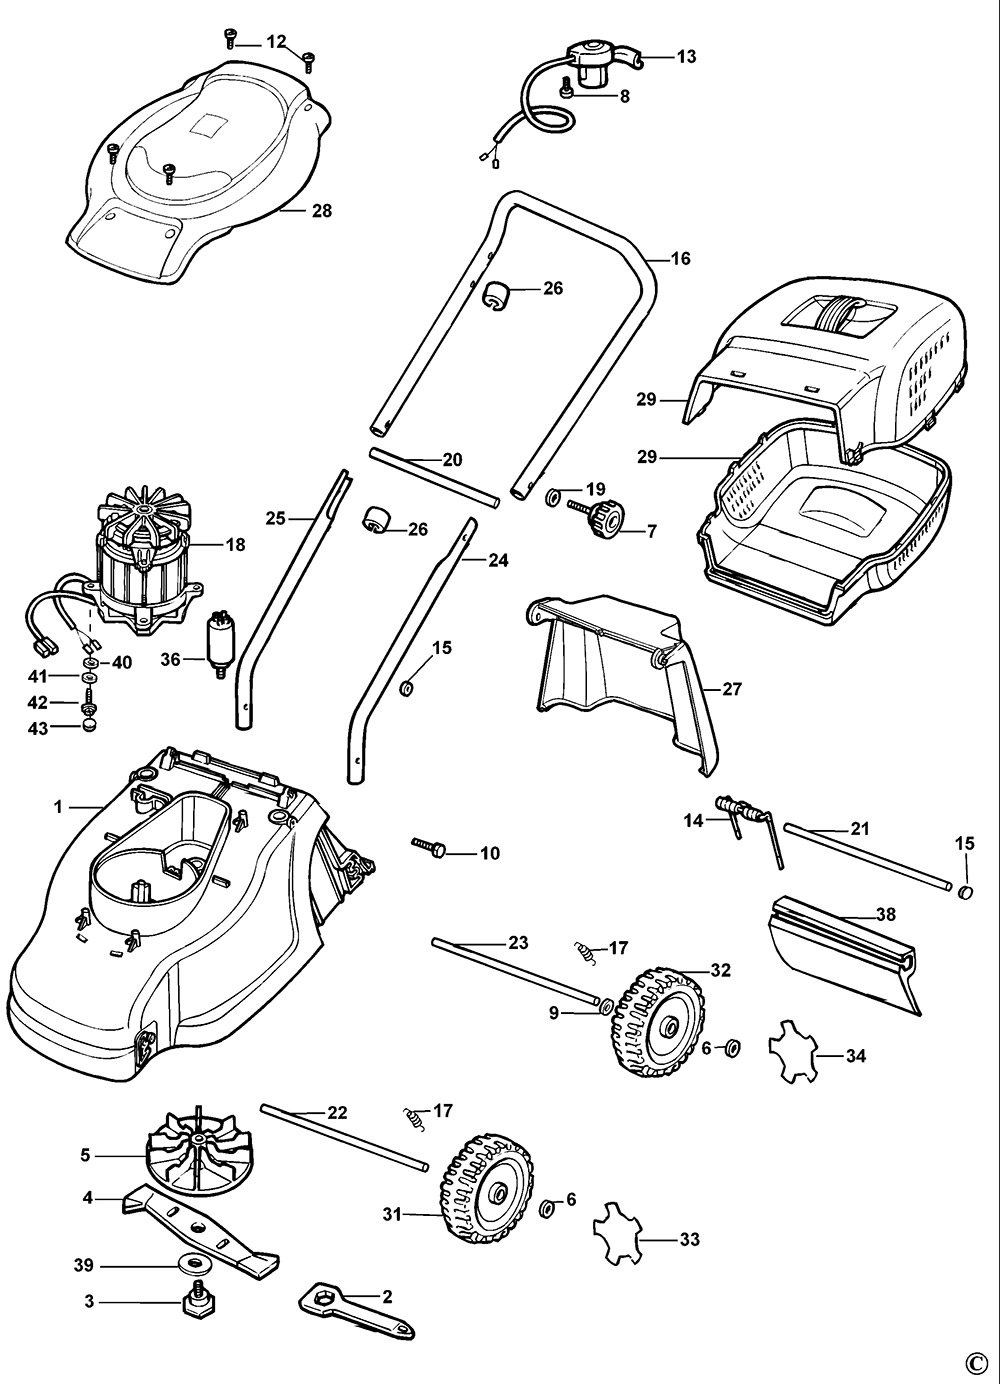 Black And Decker Lawn Mower Parts : Black decker gr type rotary mower spare parts